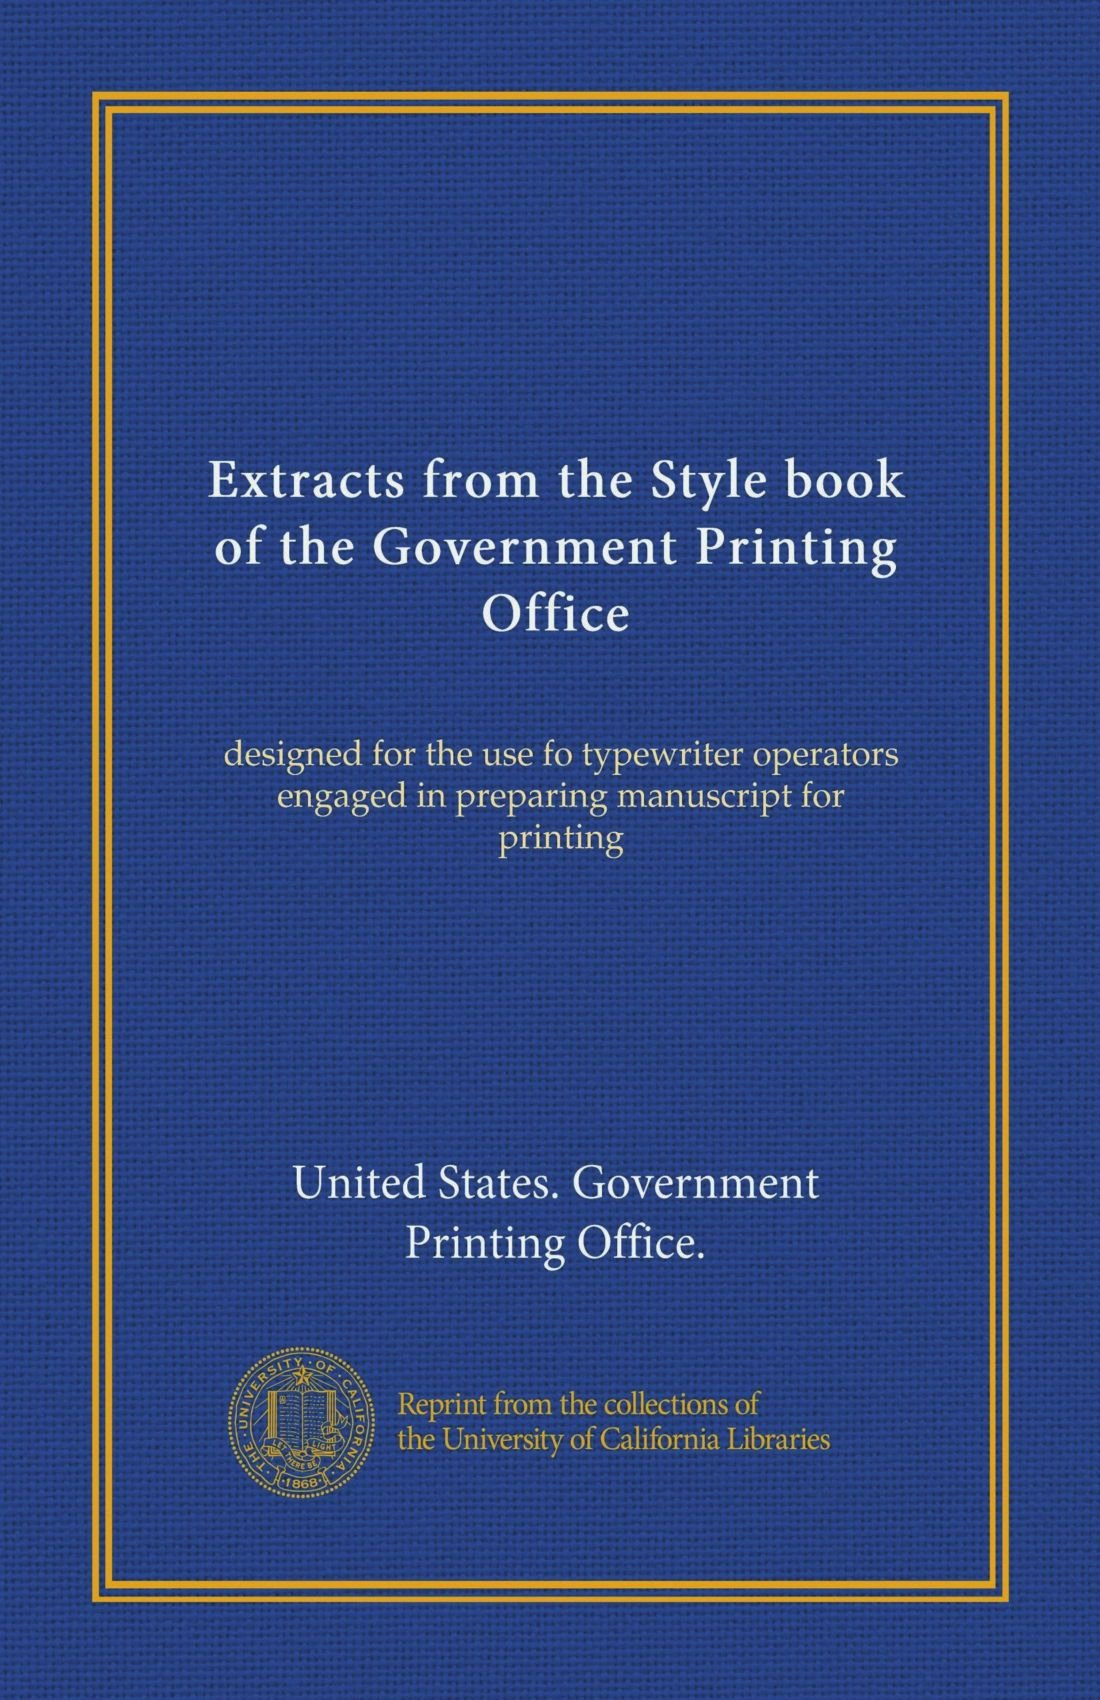 Download Extracts from the Style book of the Government Printing Office: designed for the use fo typewriter operators engaged in preparing manuscript for printing PDF